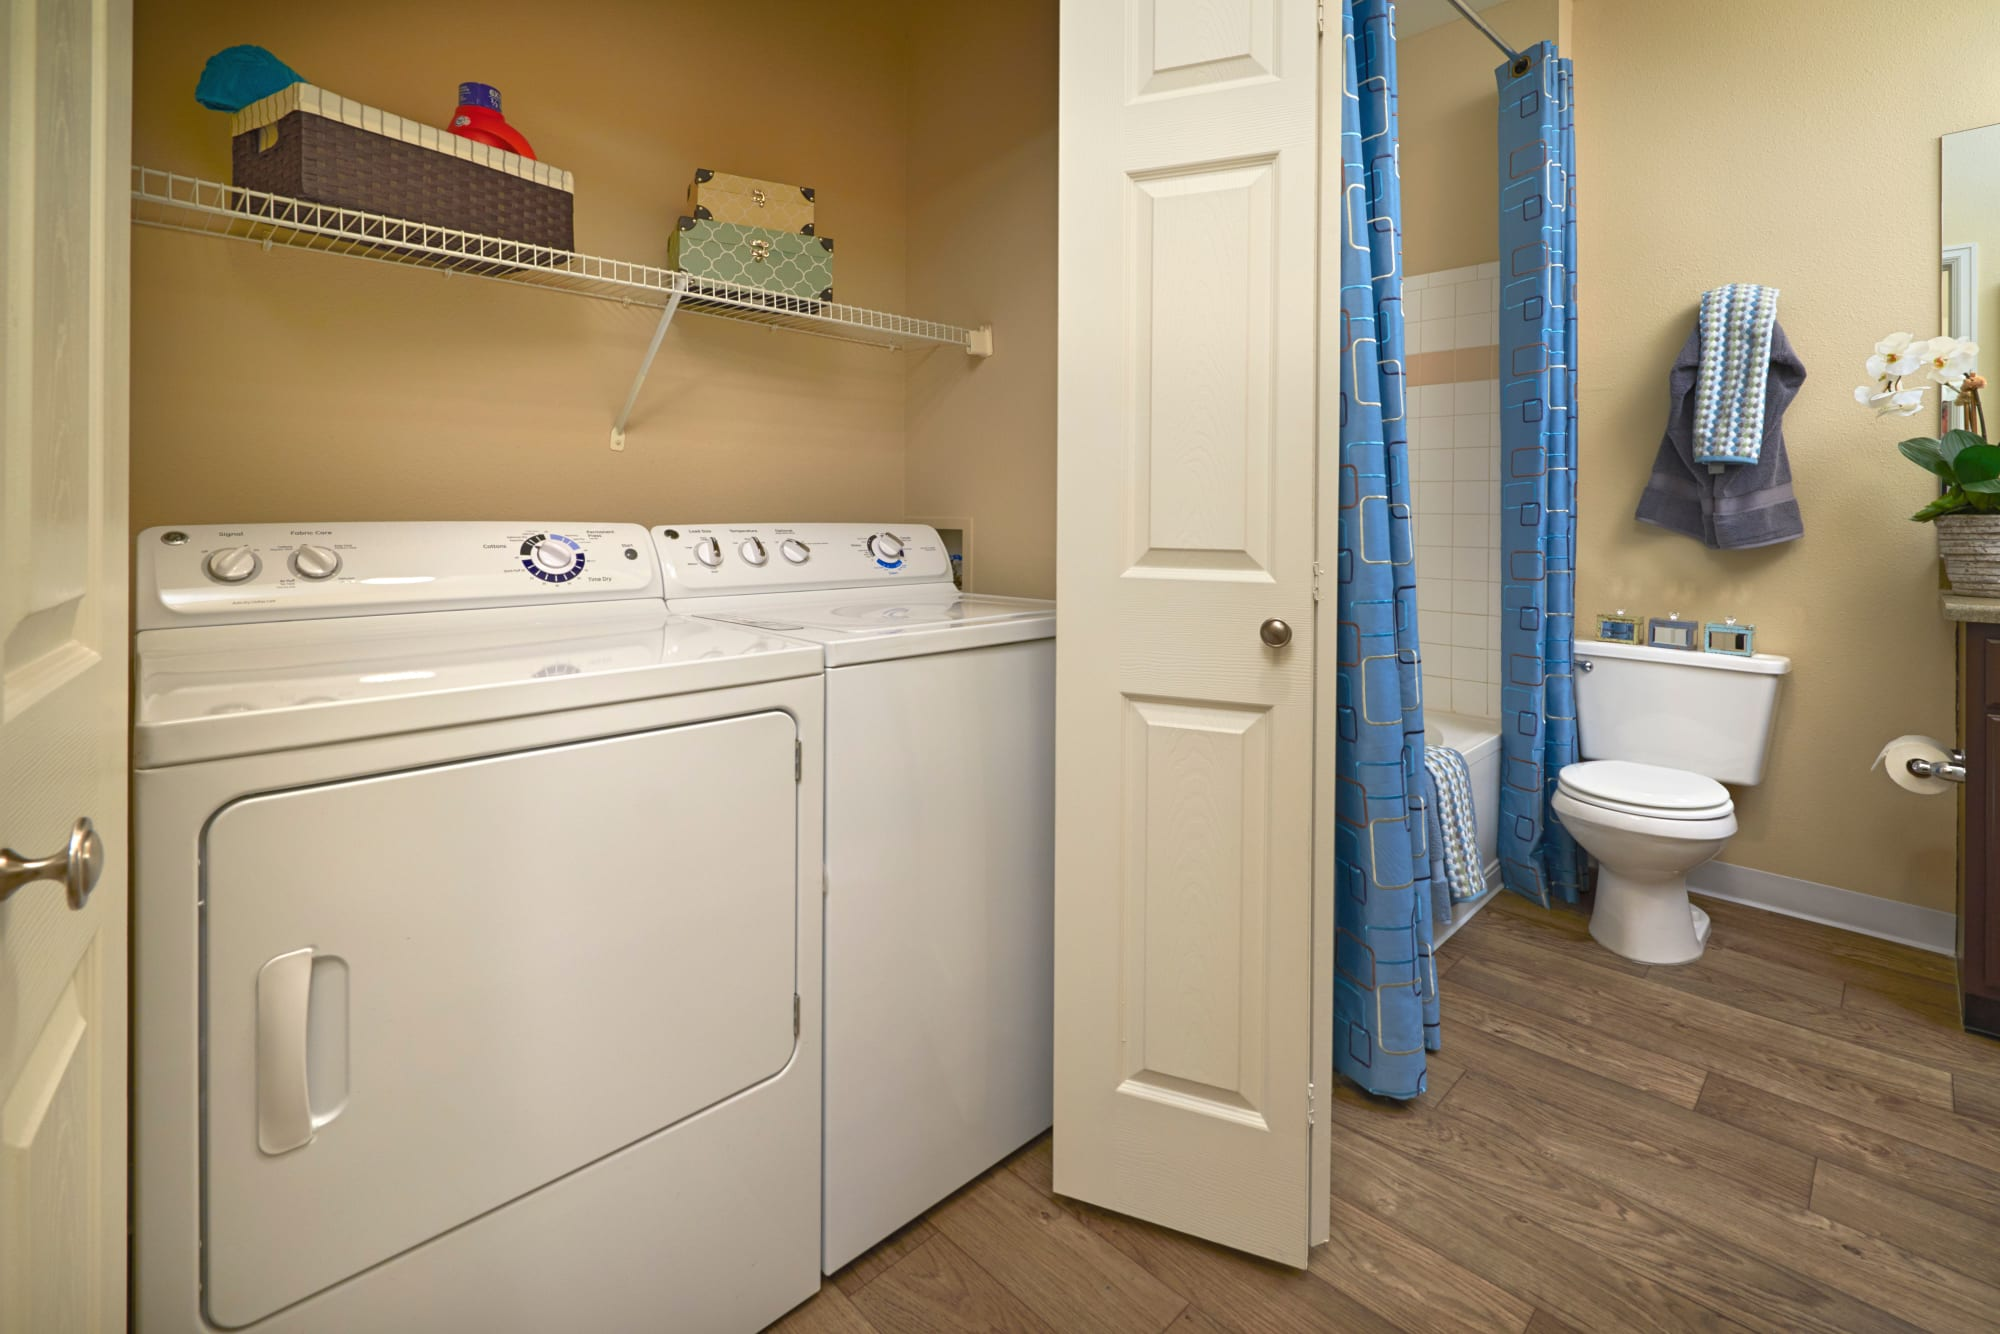 Washer and dryer at Skyecrest Apartments in Lakewood, Colorado